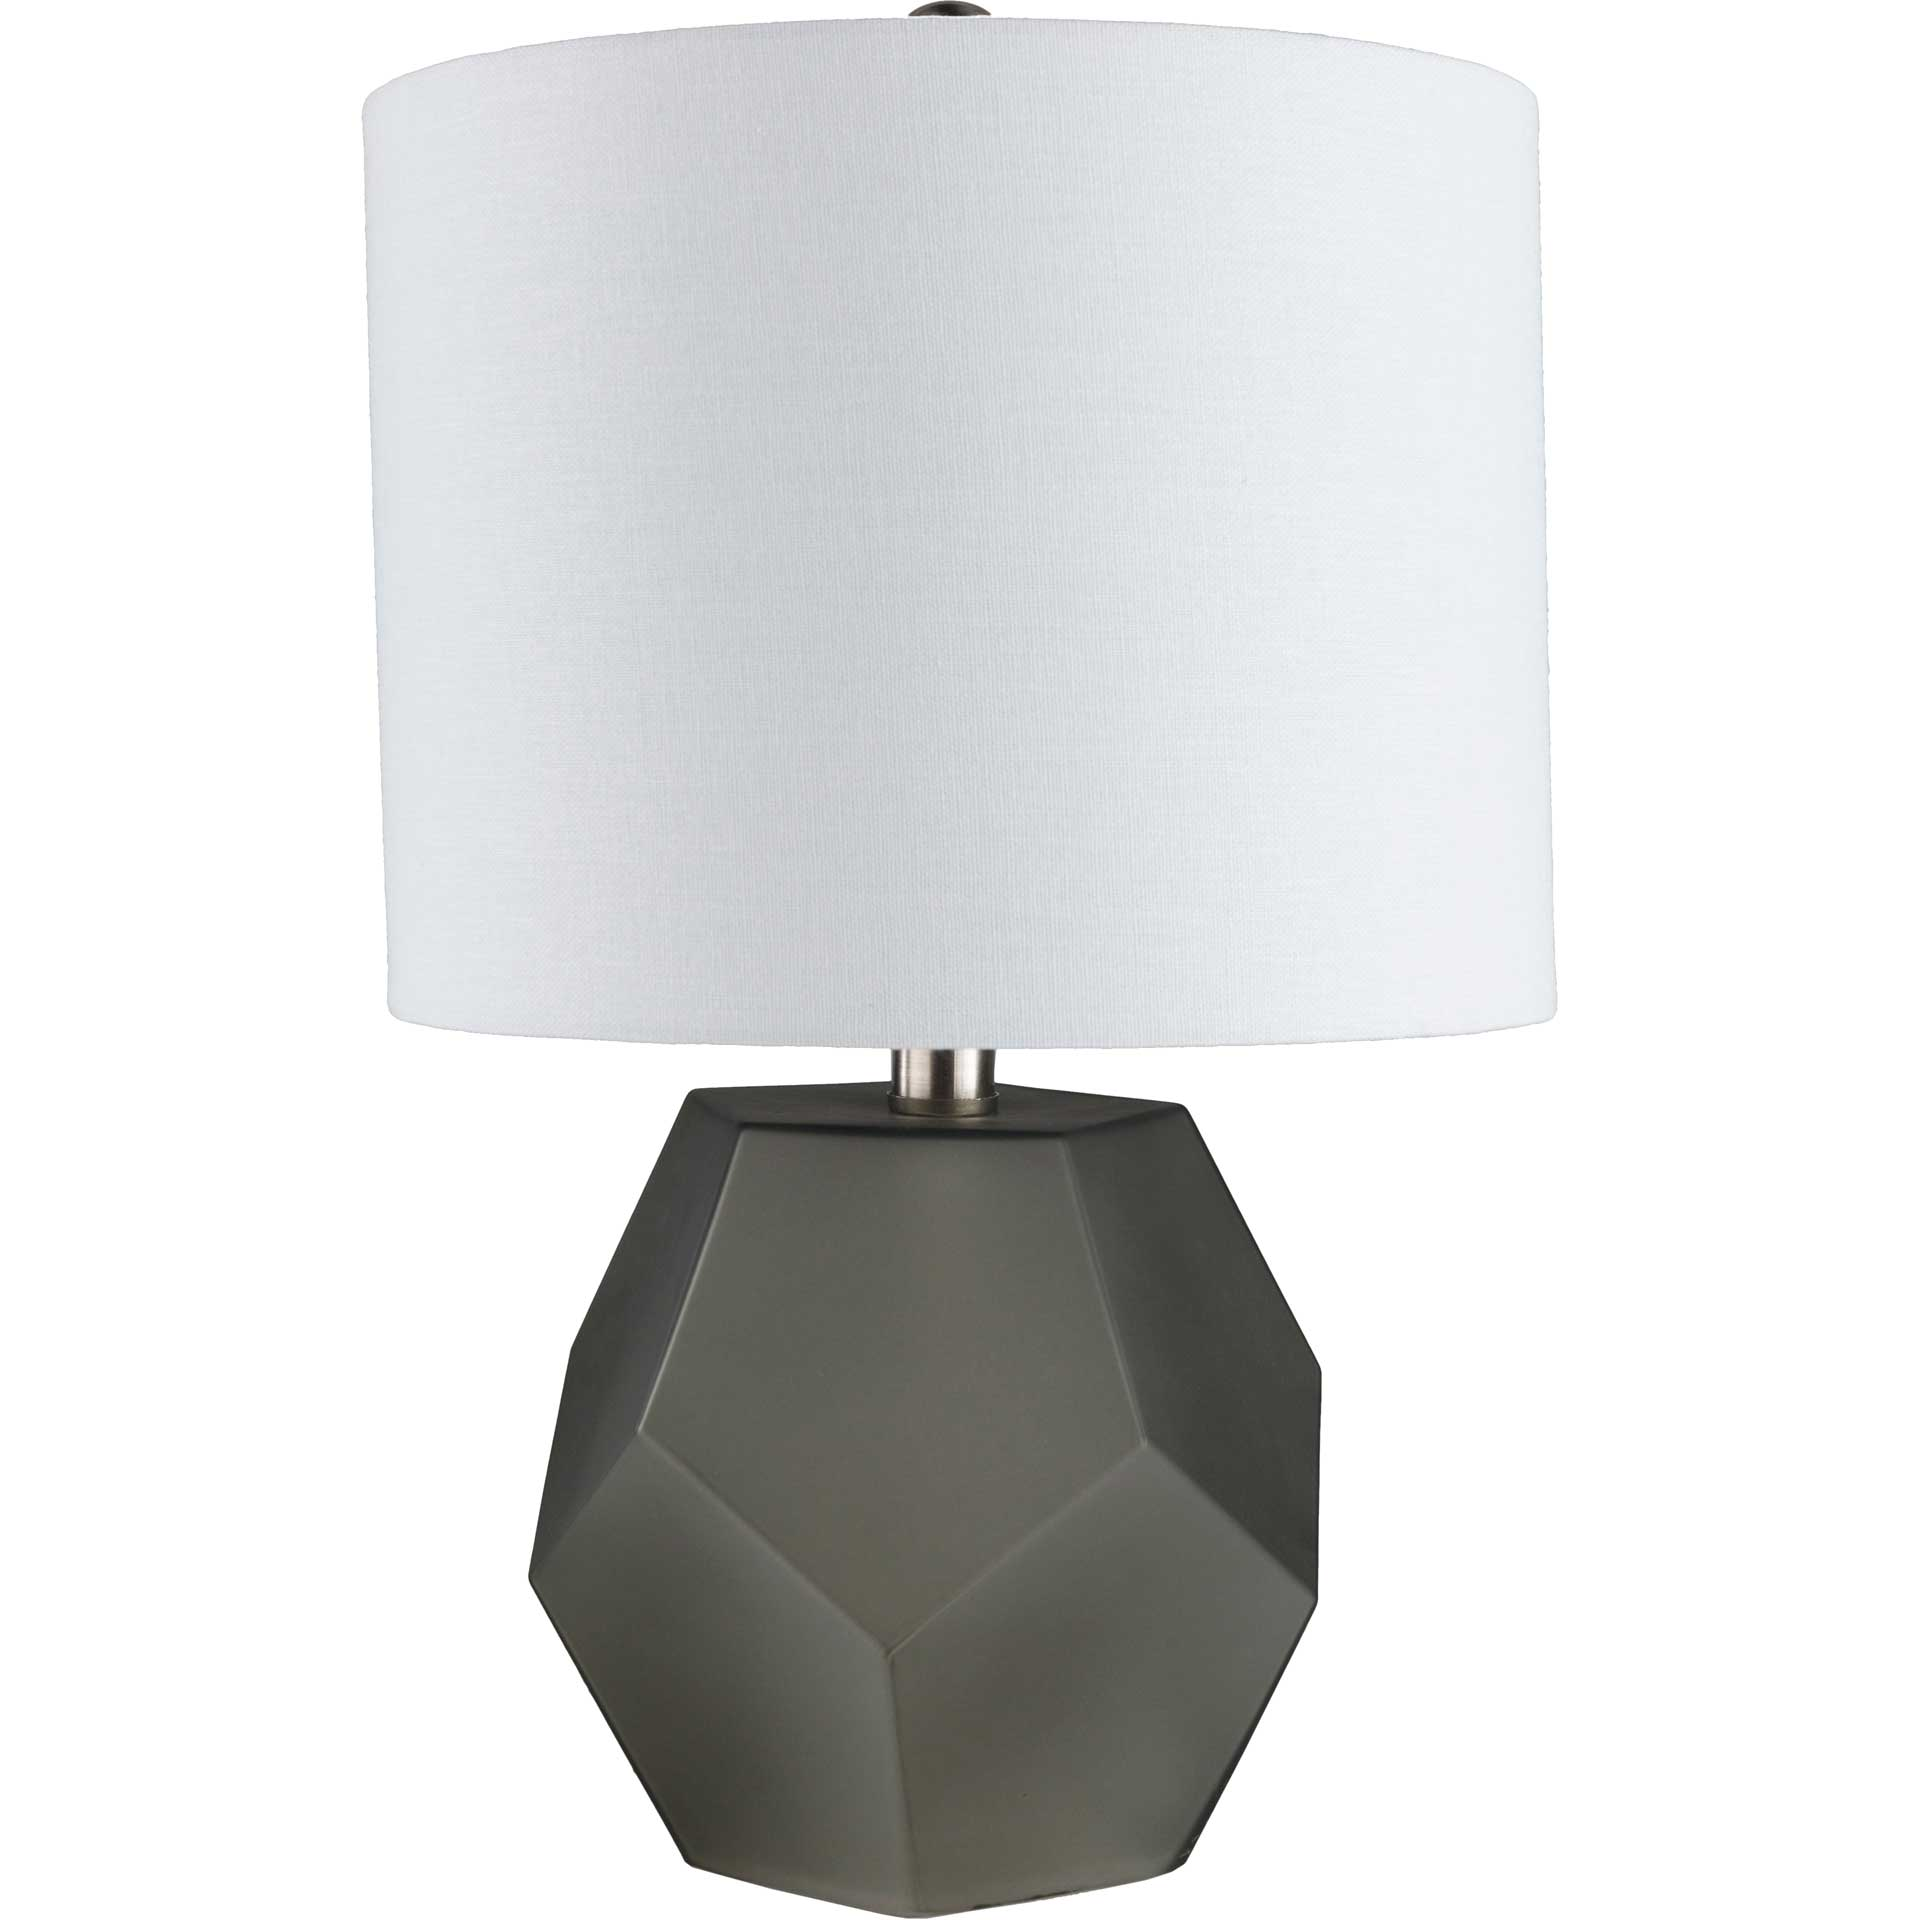 Keanu Table Lamp Charcoal/White